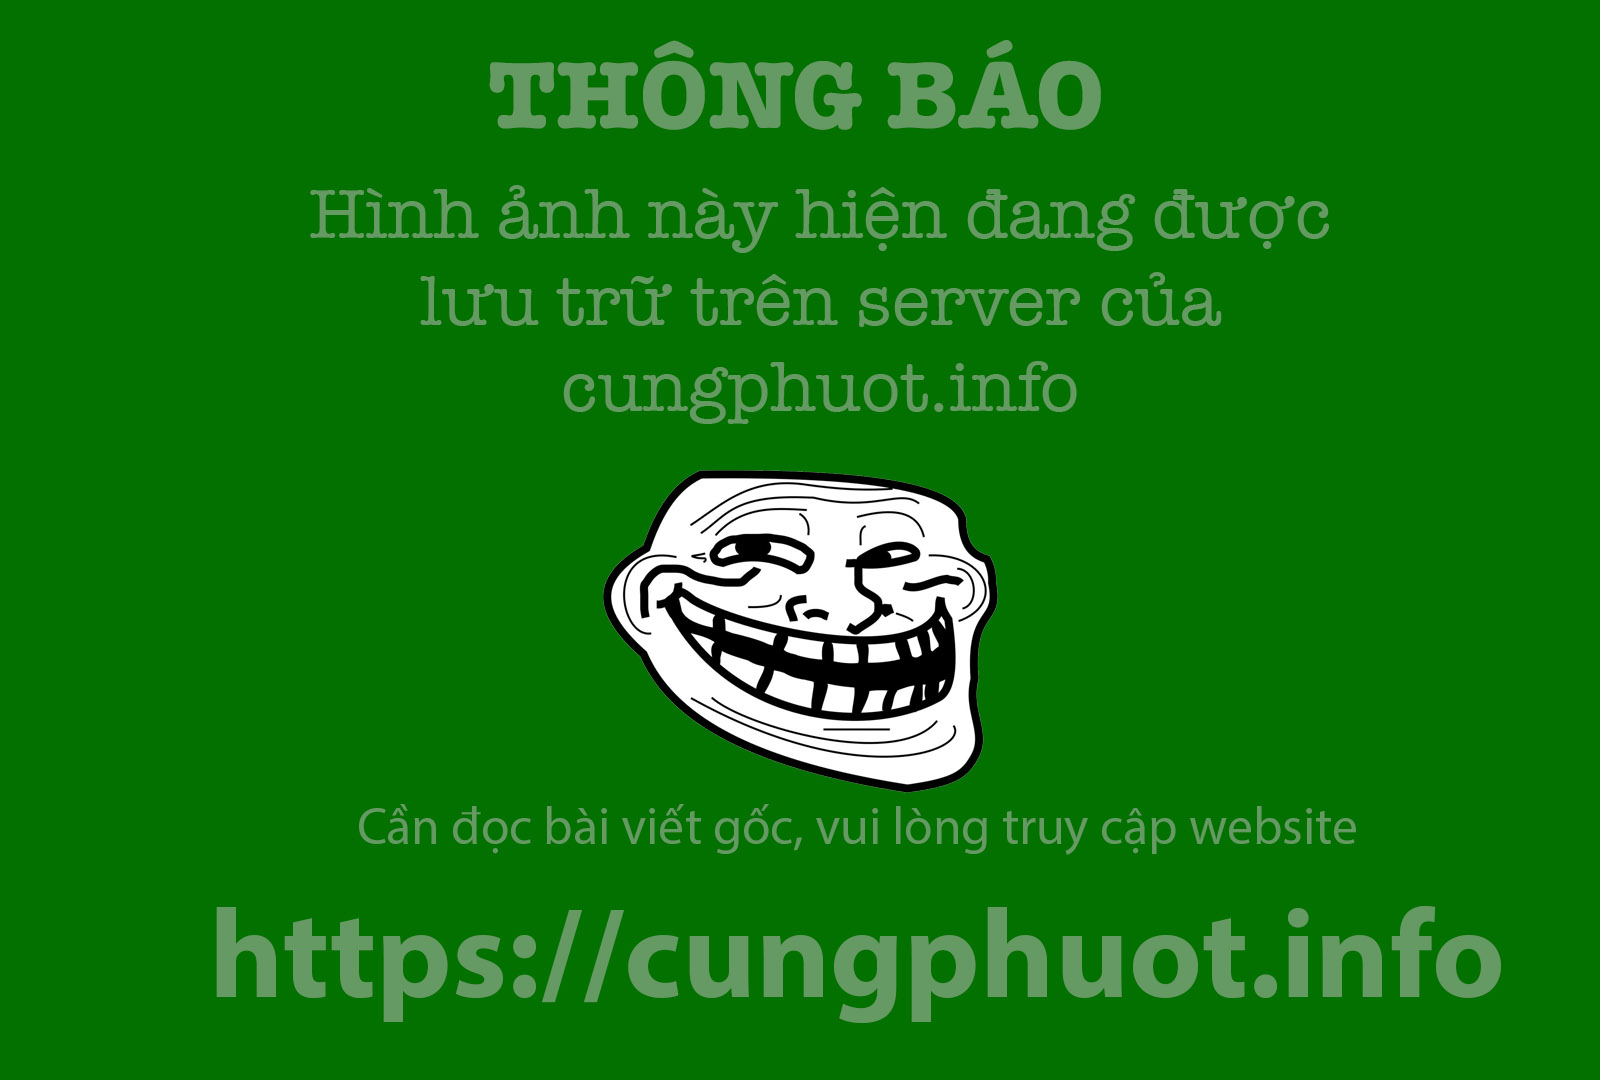 9 cung duong deo hung vi khien tin do du lich muon chinh phuc hinh anh 8